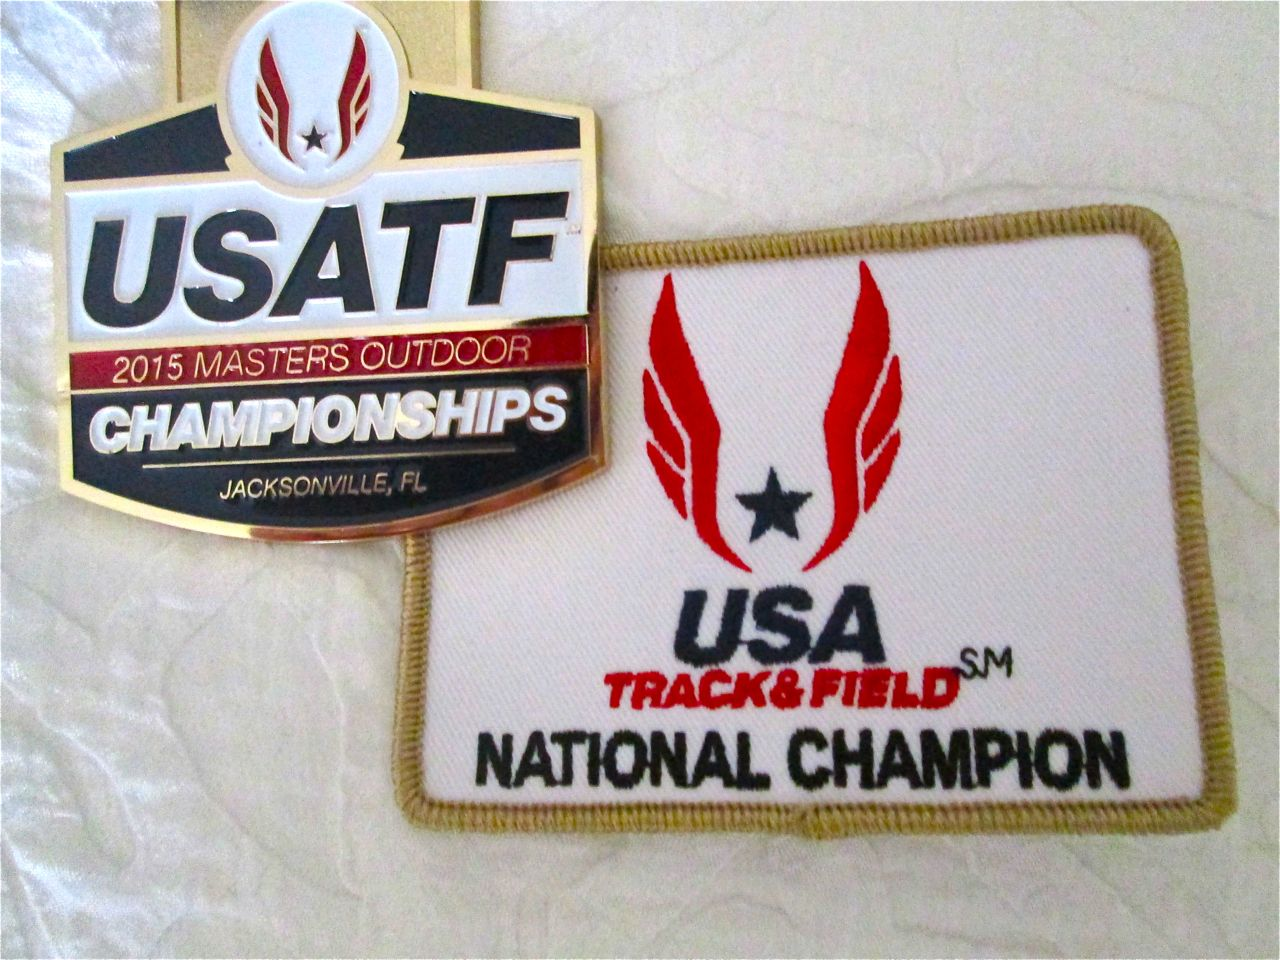 2015 National Champion USATF M55 outdoor 400m